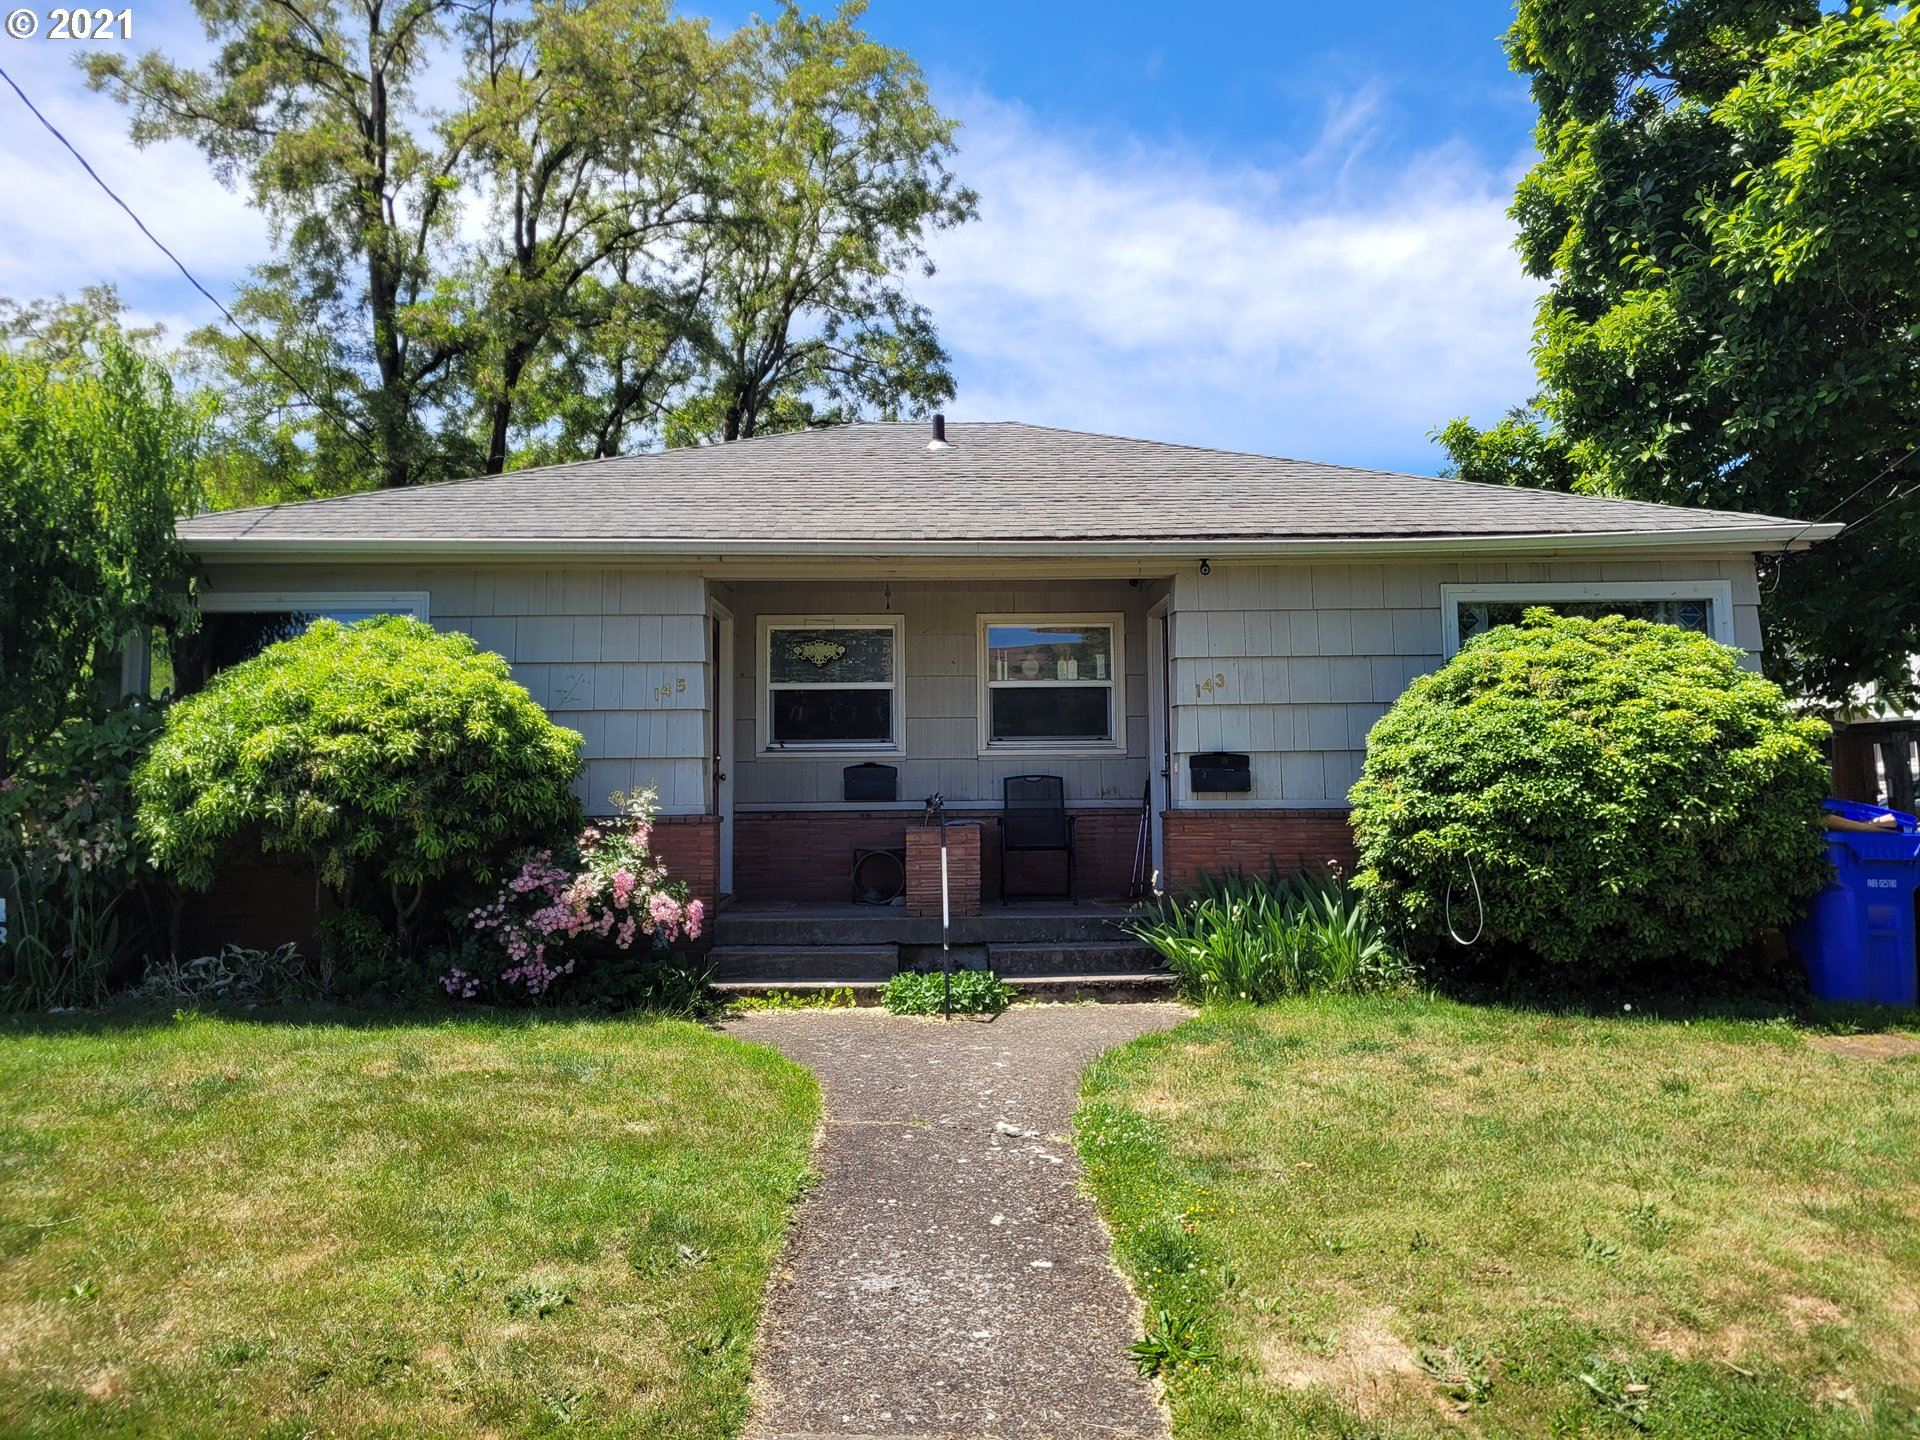 143 SE 74TH AVE, Portland, OR 97215 - MLS#: 21633503